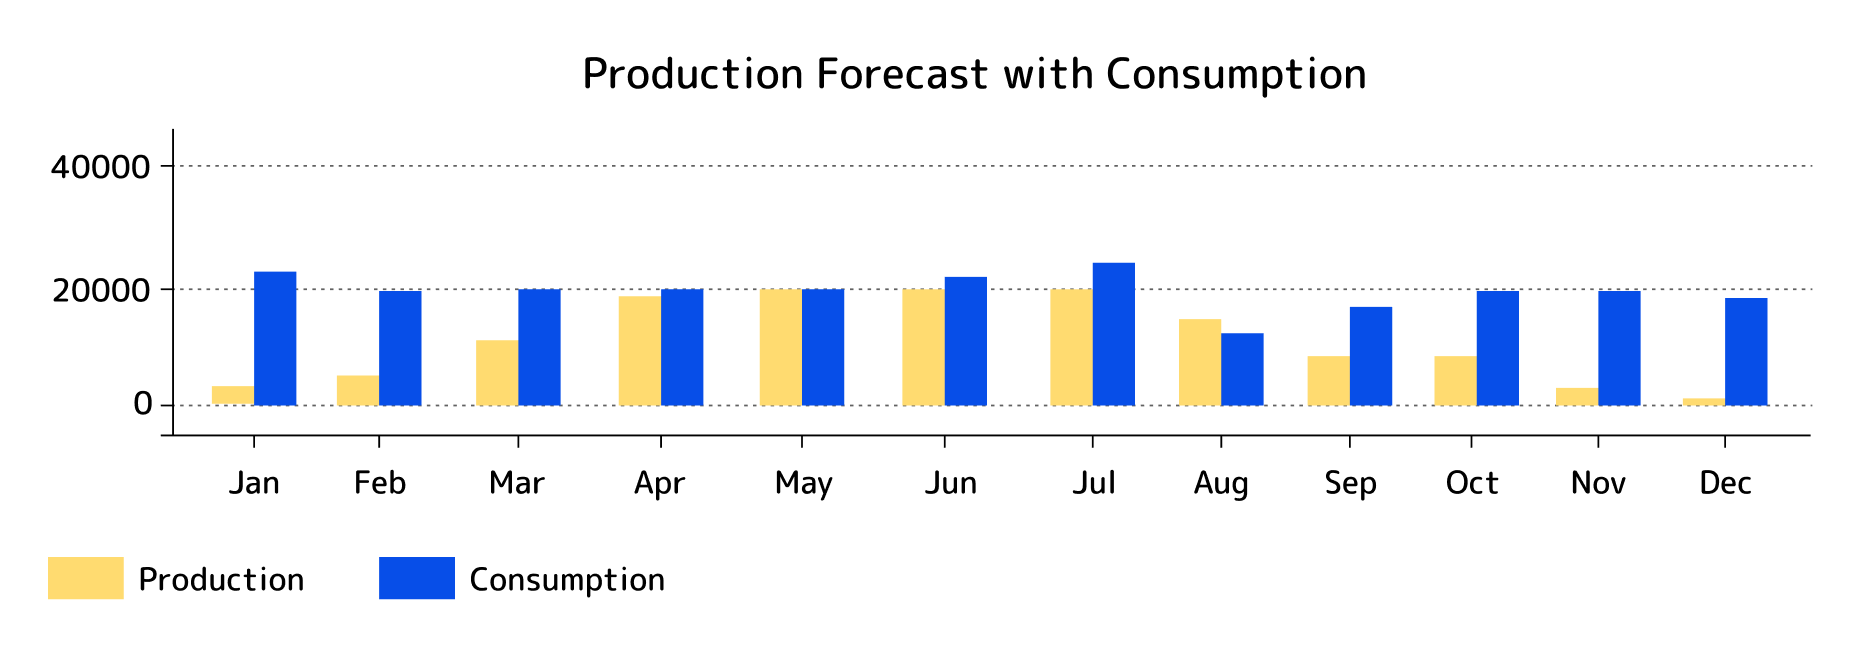 Solar park electricity production and consumption forecast